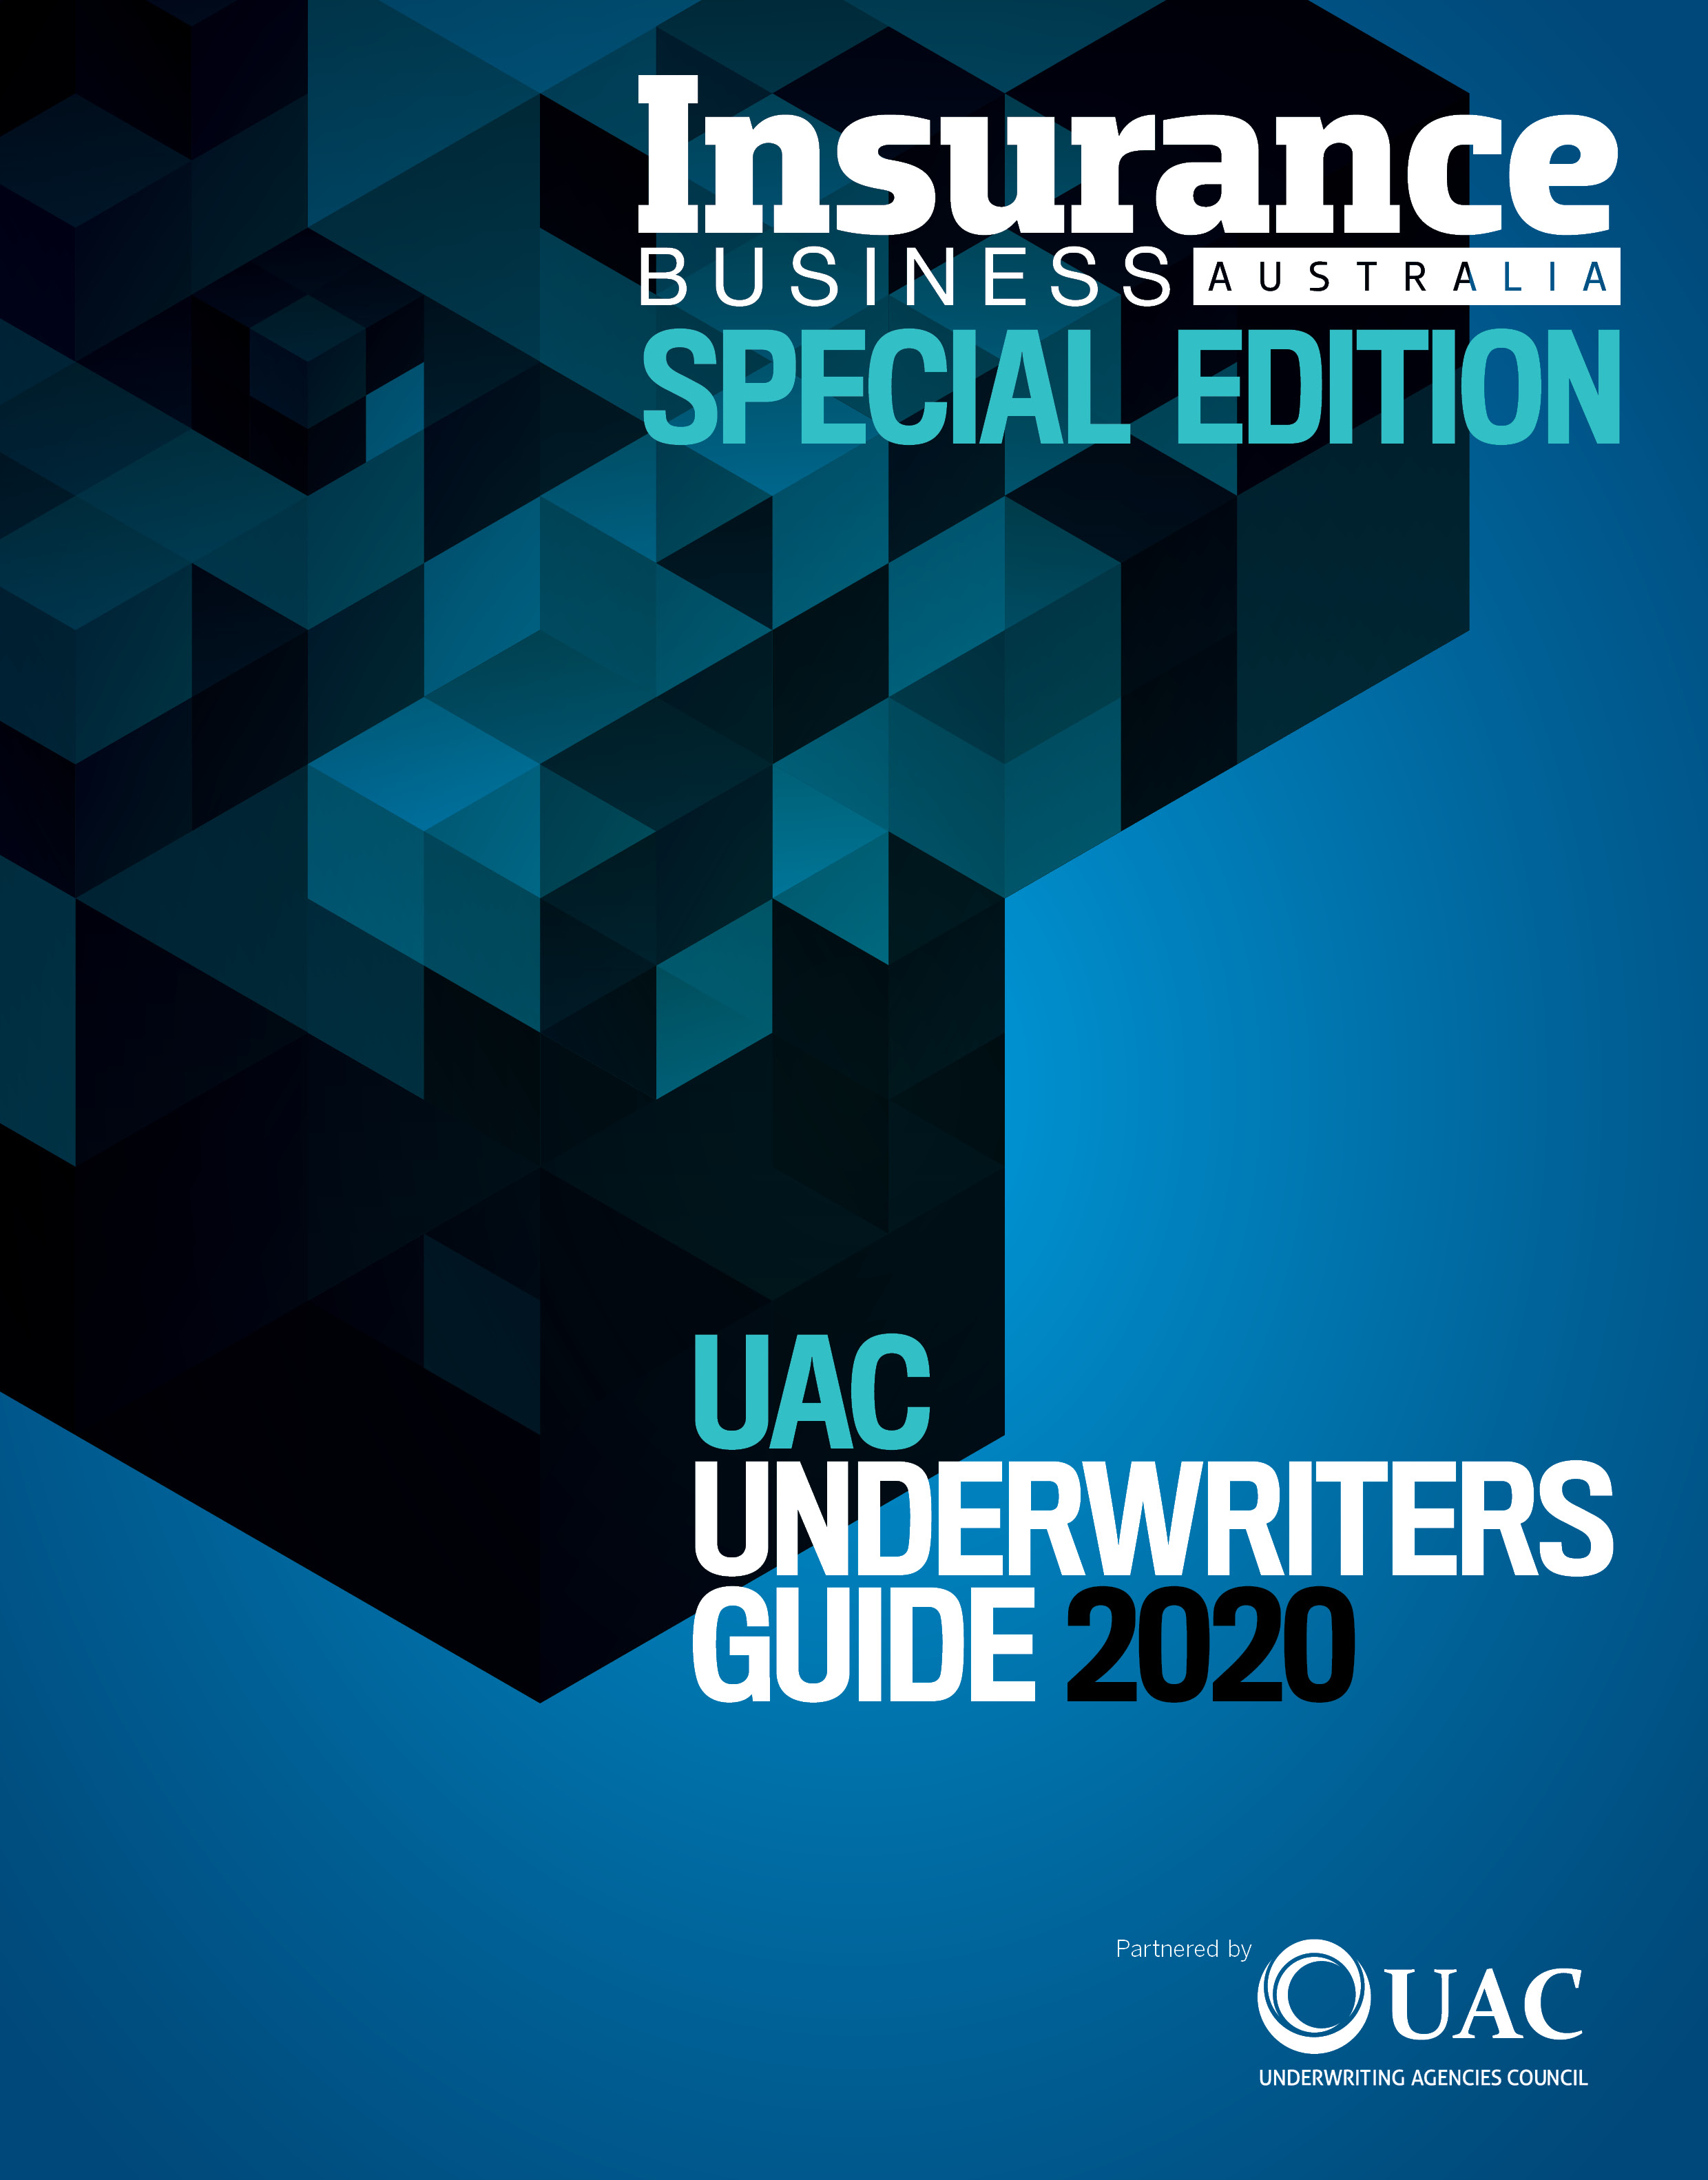 UAC Underwriters Guide 2020